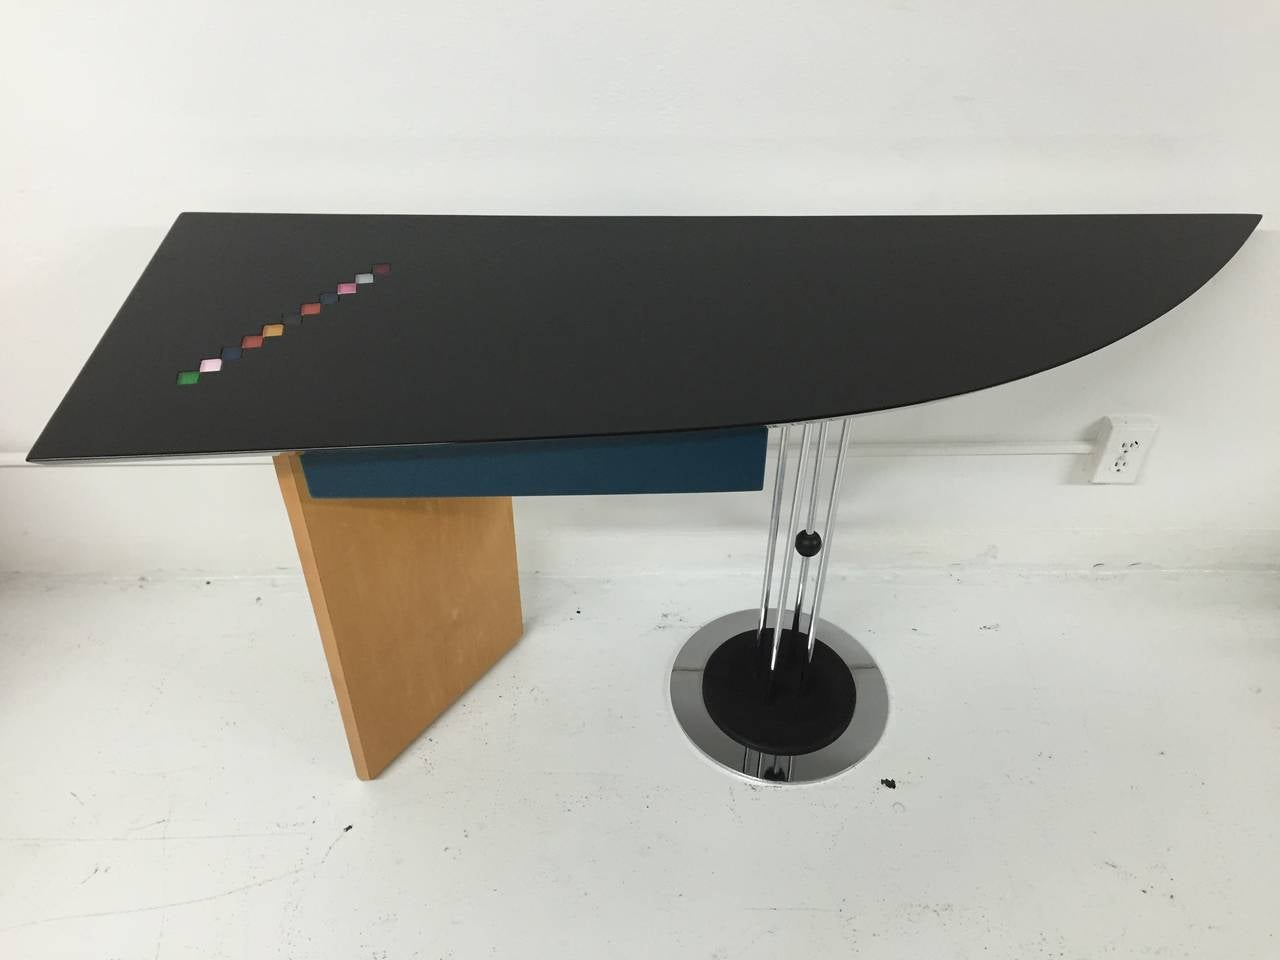 High gloss black lacquer top with inset multicolor stone tiles and a chrome and wood base writing desk by Maurizio Salvato for Saporiti, Italia.